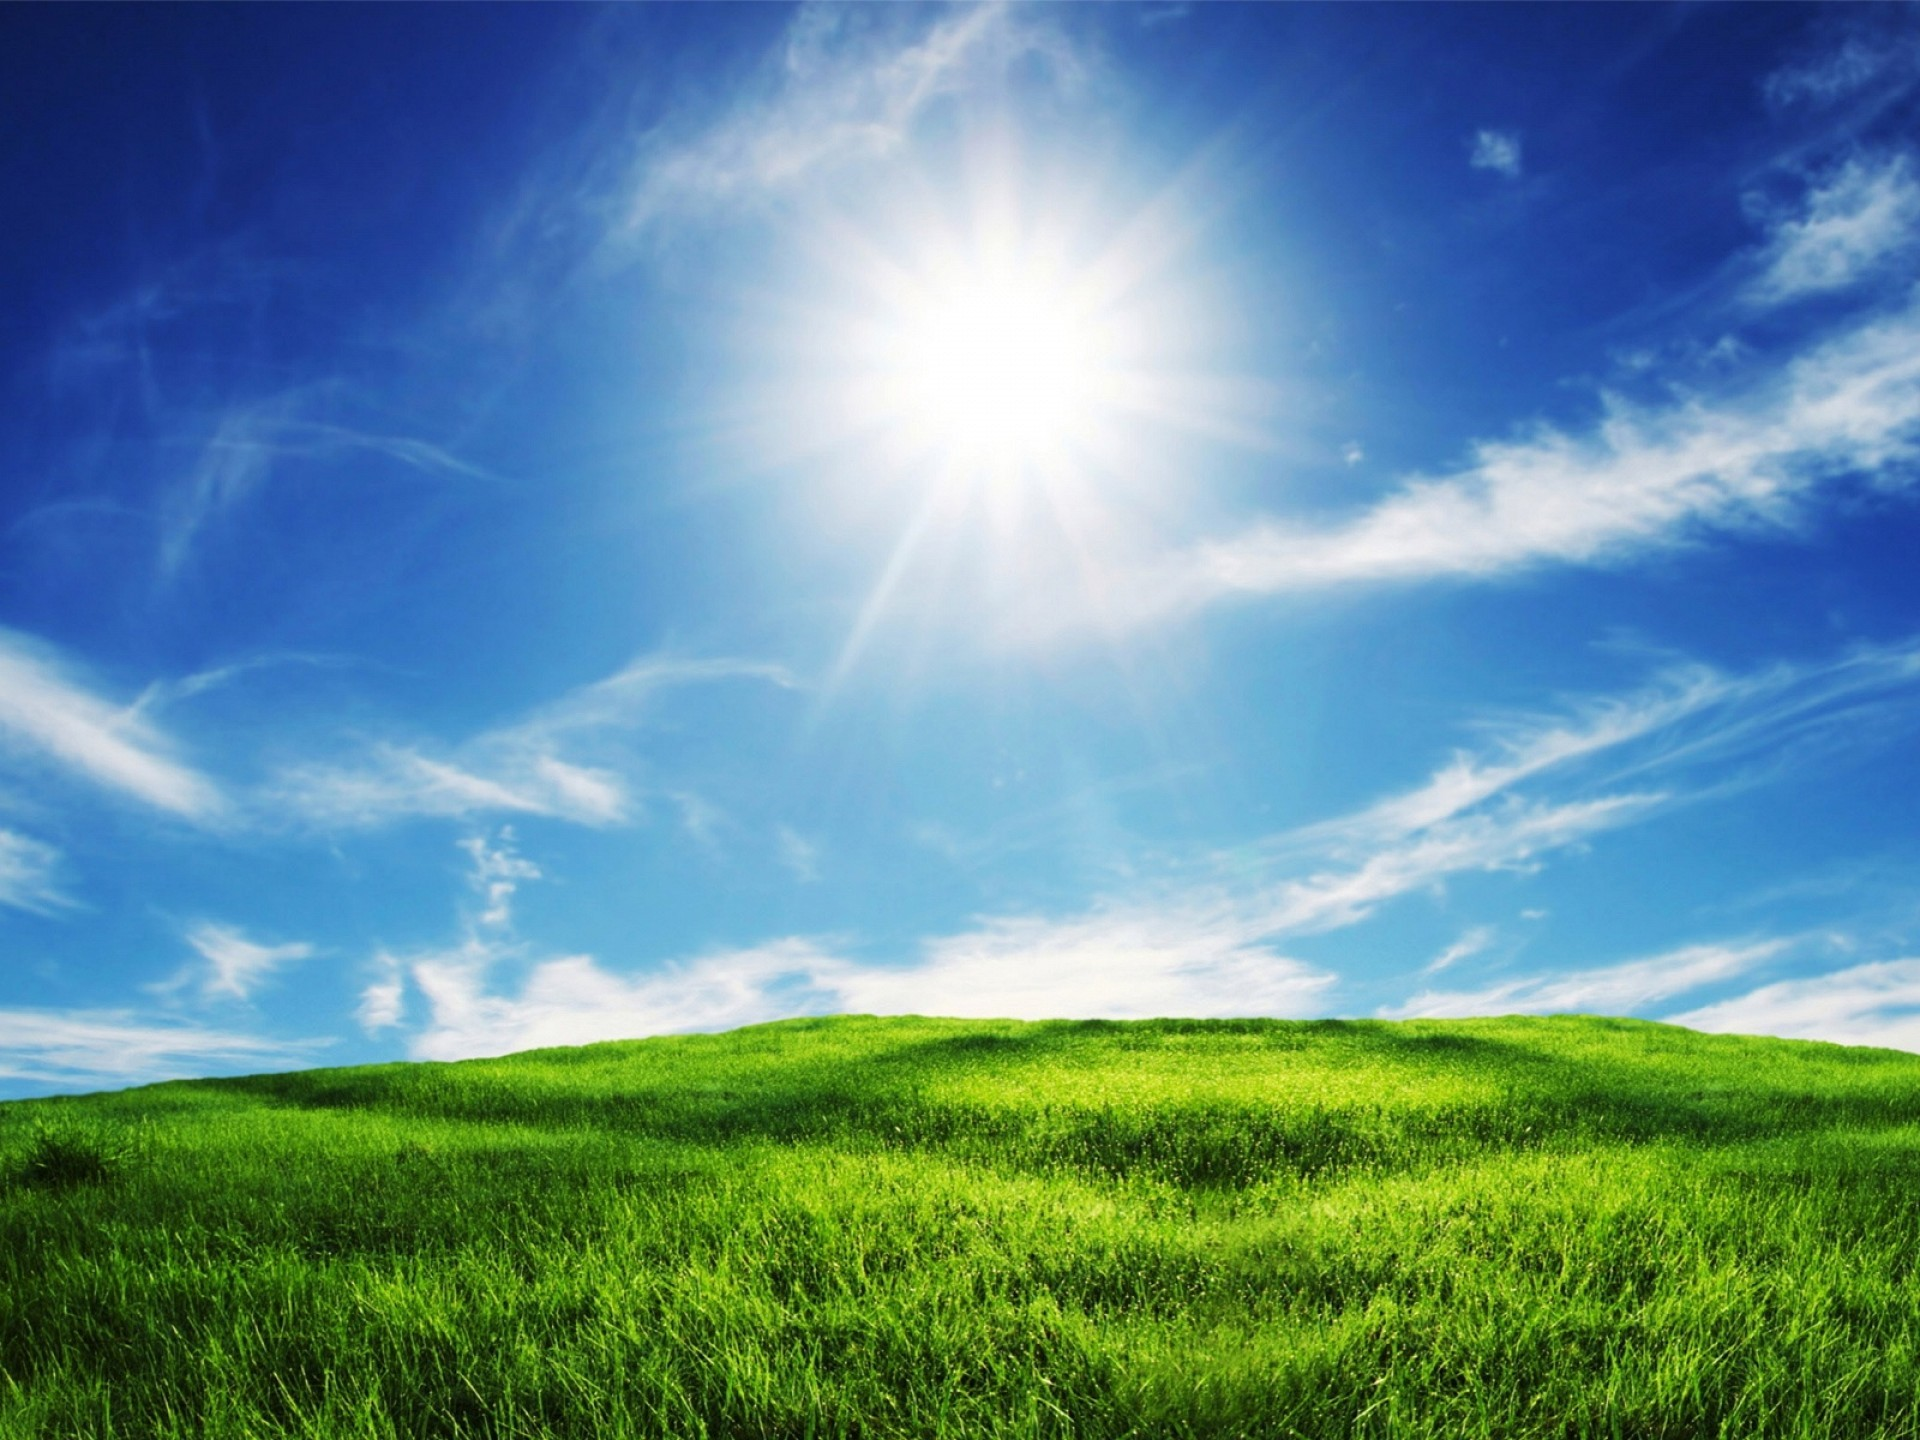 1920x1440 Green Grass And Blue Sky Wallpaper